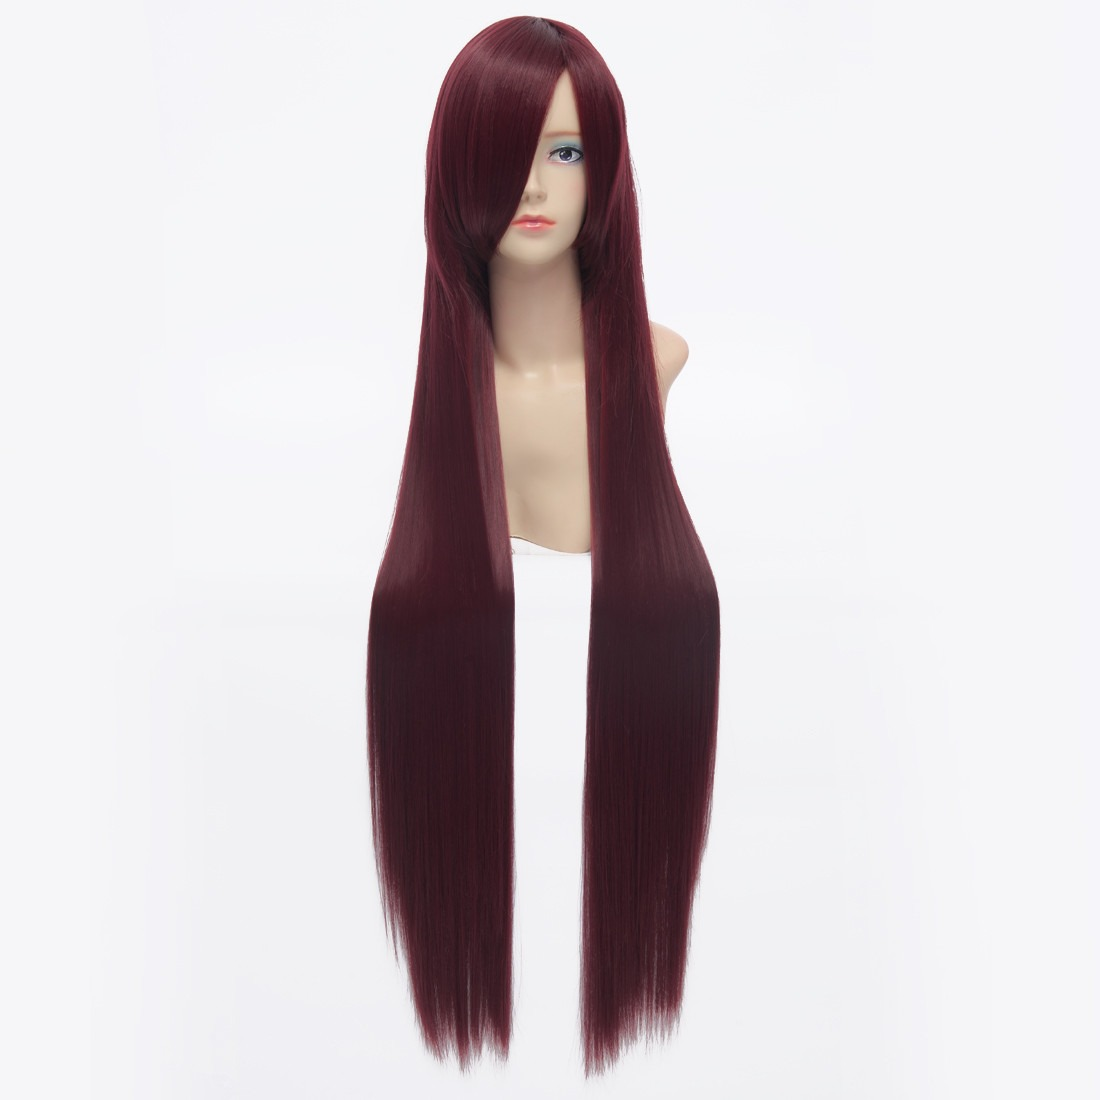 100cm Dark Red Straight Long Synthetic Full Cosplay Costume Anime Fancy Wig<br><br>Aliexpress